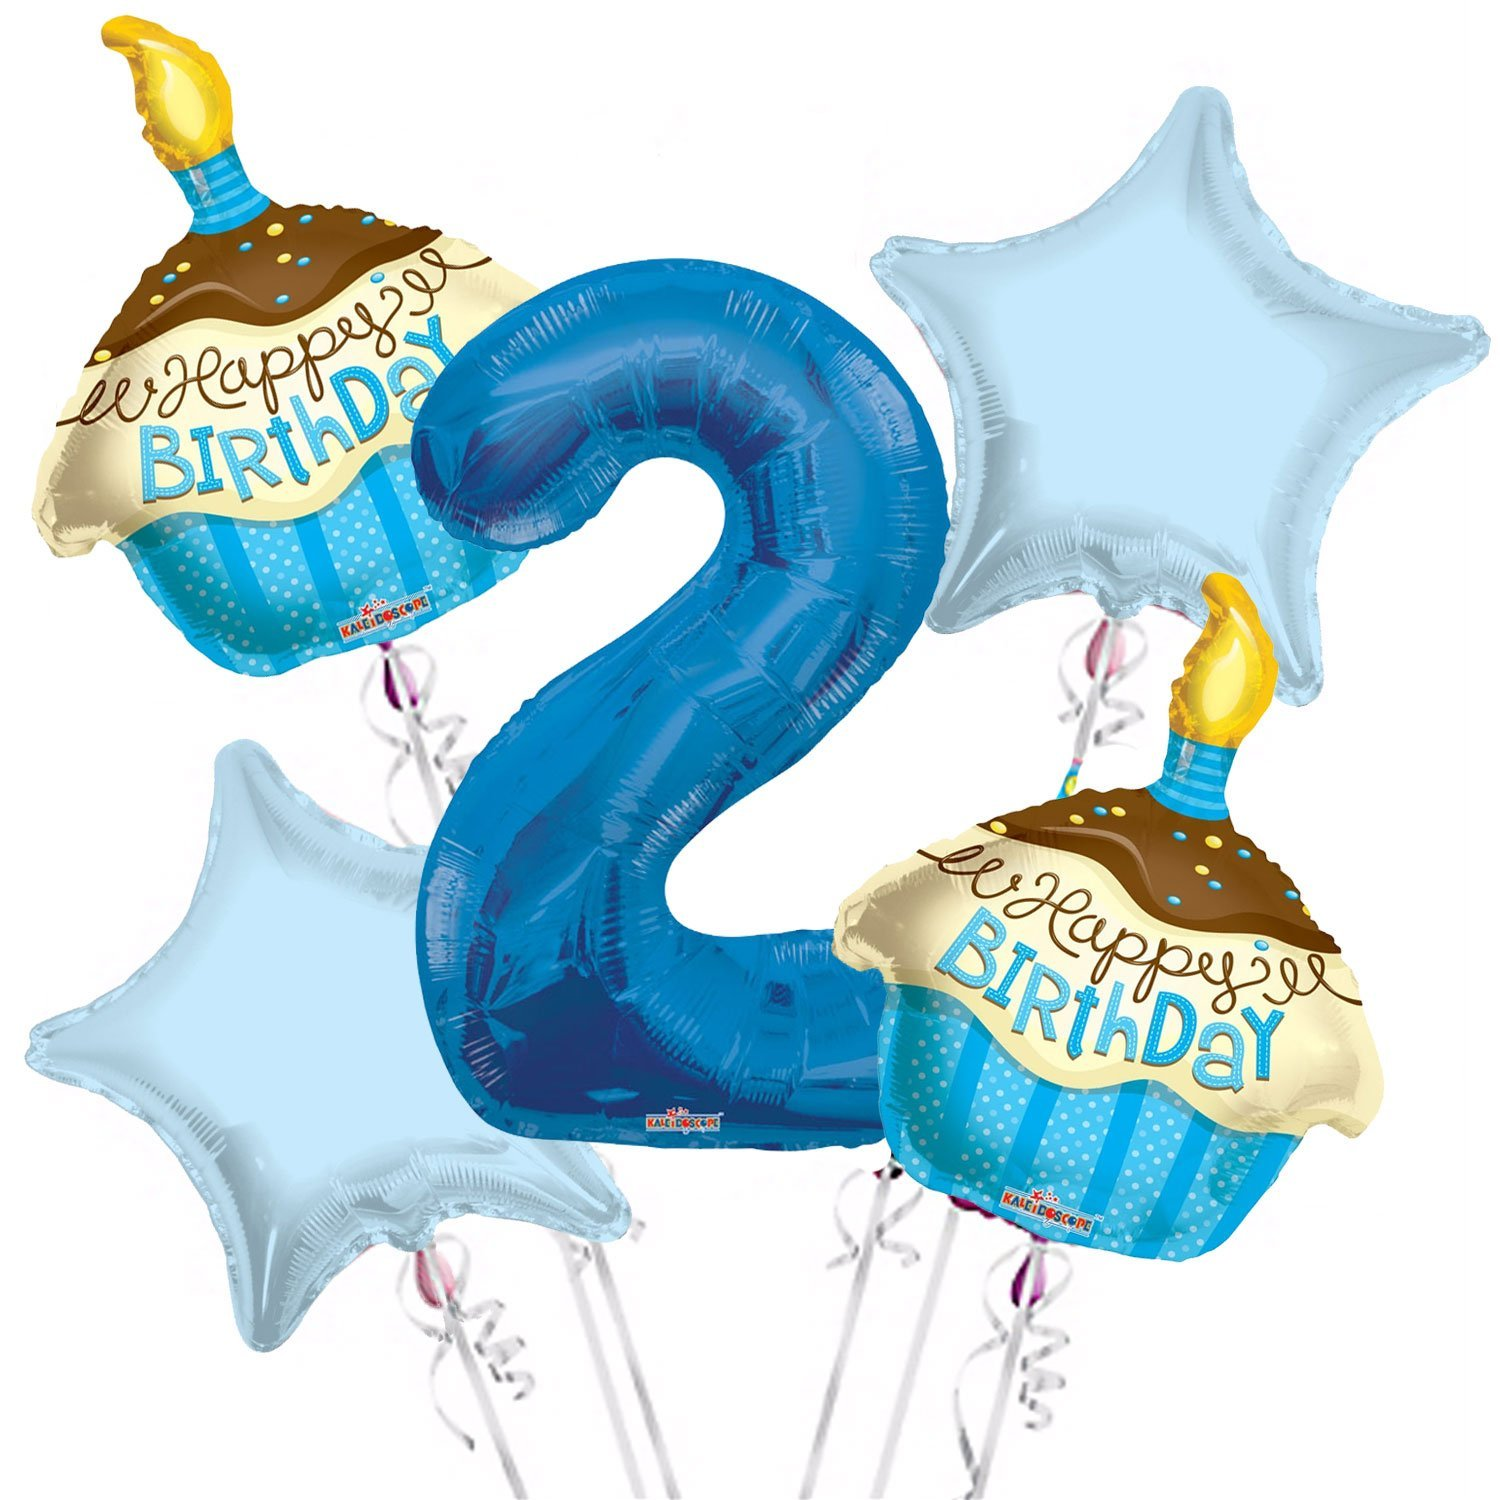 Cupcakes Balloon Bouquet 2nd Birthday 5 pcs - Party Supplies, 1 Giant Number 2 Balloon, 34in By Viva Party